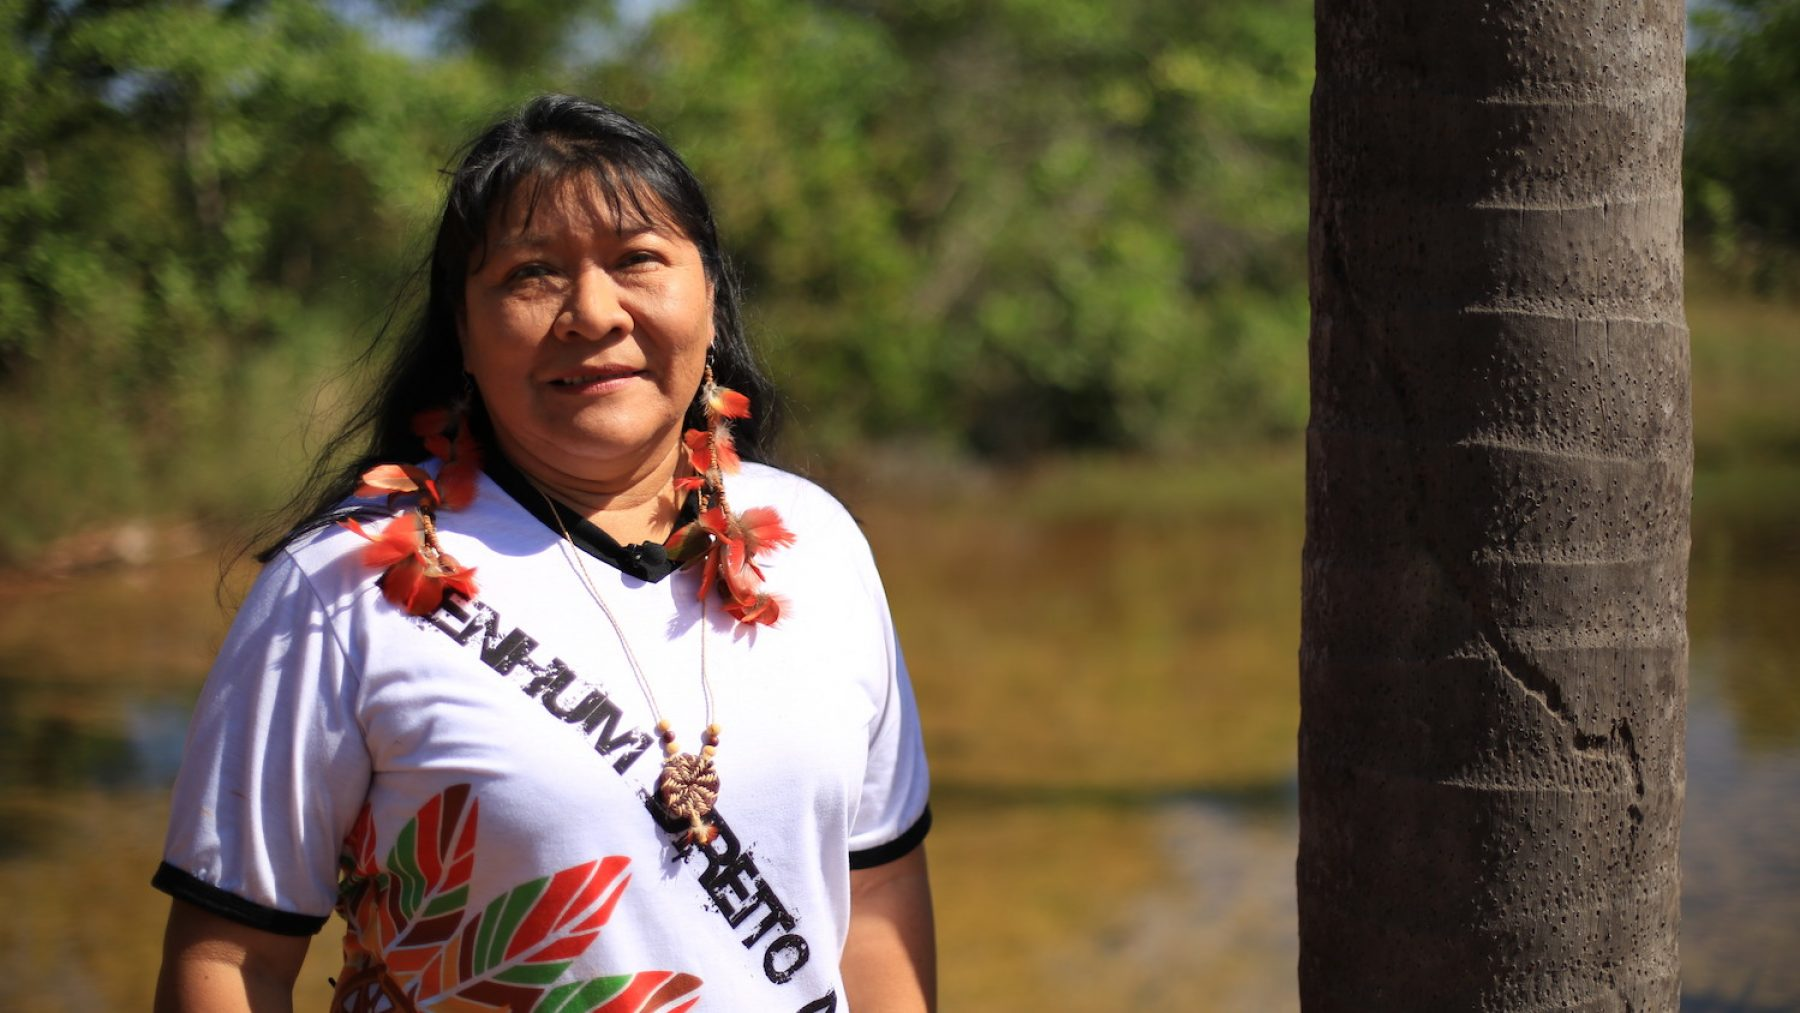 Image for The indigenous Brazilian congresswoman who is standing up to Bolsonaro